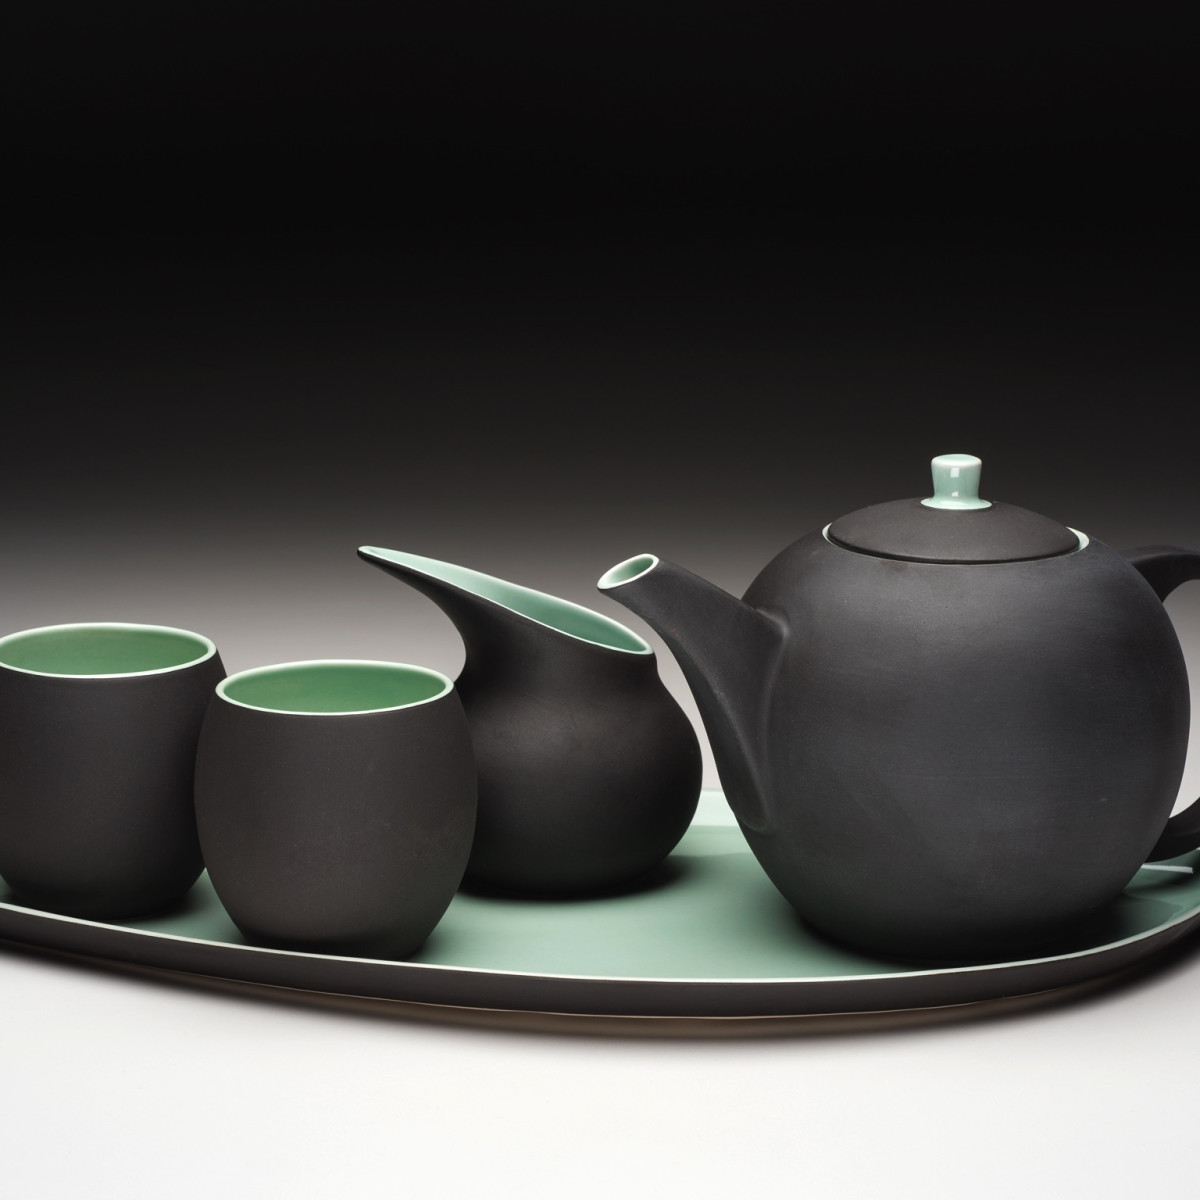 Japanese ceramic tea set at the Lotus Shop